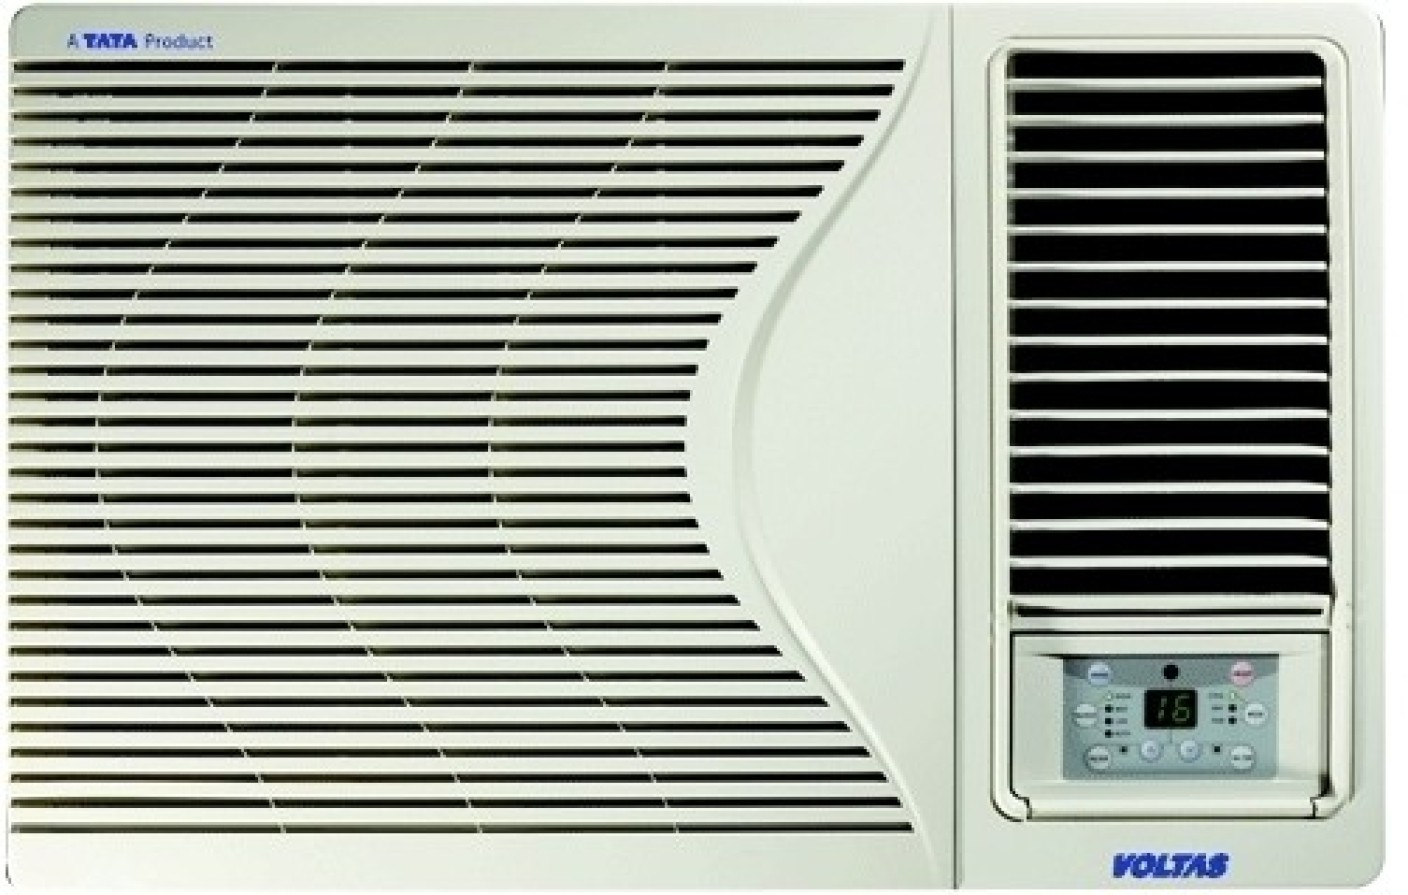 Voltas platinum 3s 1 ton window air conditioner price in for 1 ton window ac power consumption